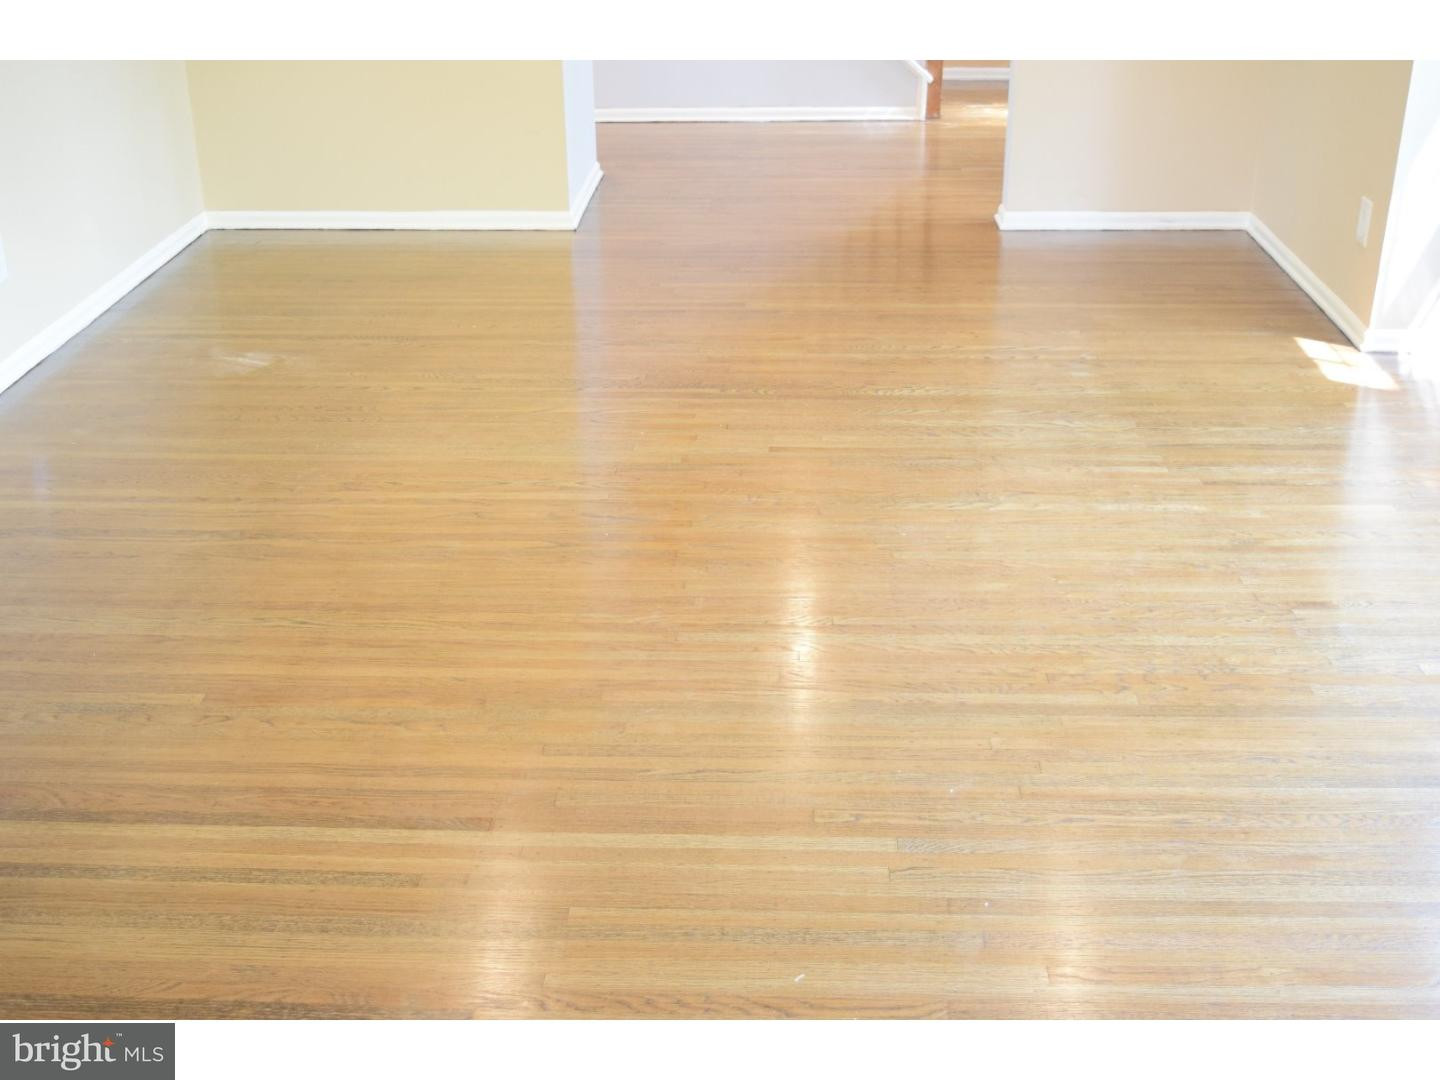 hardwood floor refinishing cherry hill nj of 153 canterbury road mount laurel 08054 sold listing mls in 153 canterbury road mount laurel nj 08054